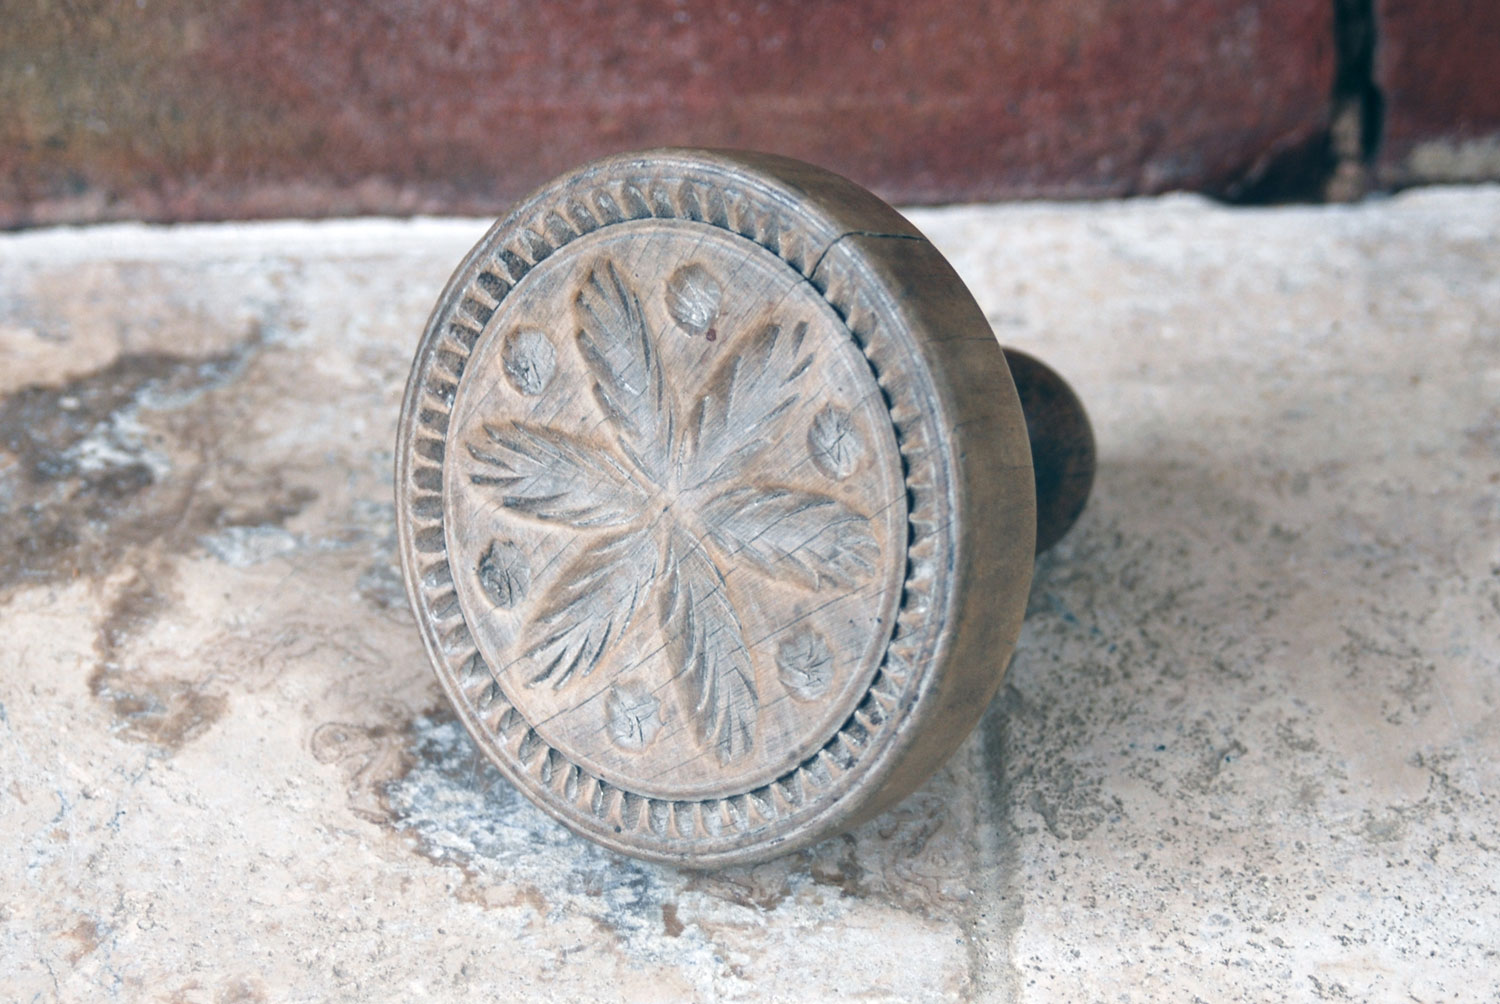 Victorian antique treen wooden english butter stamp print mold mould flower